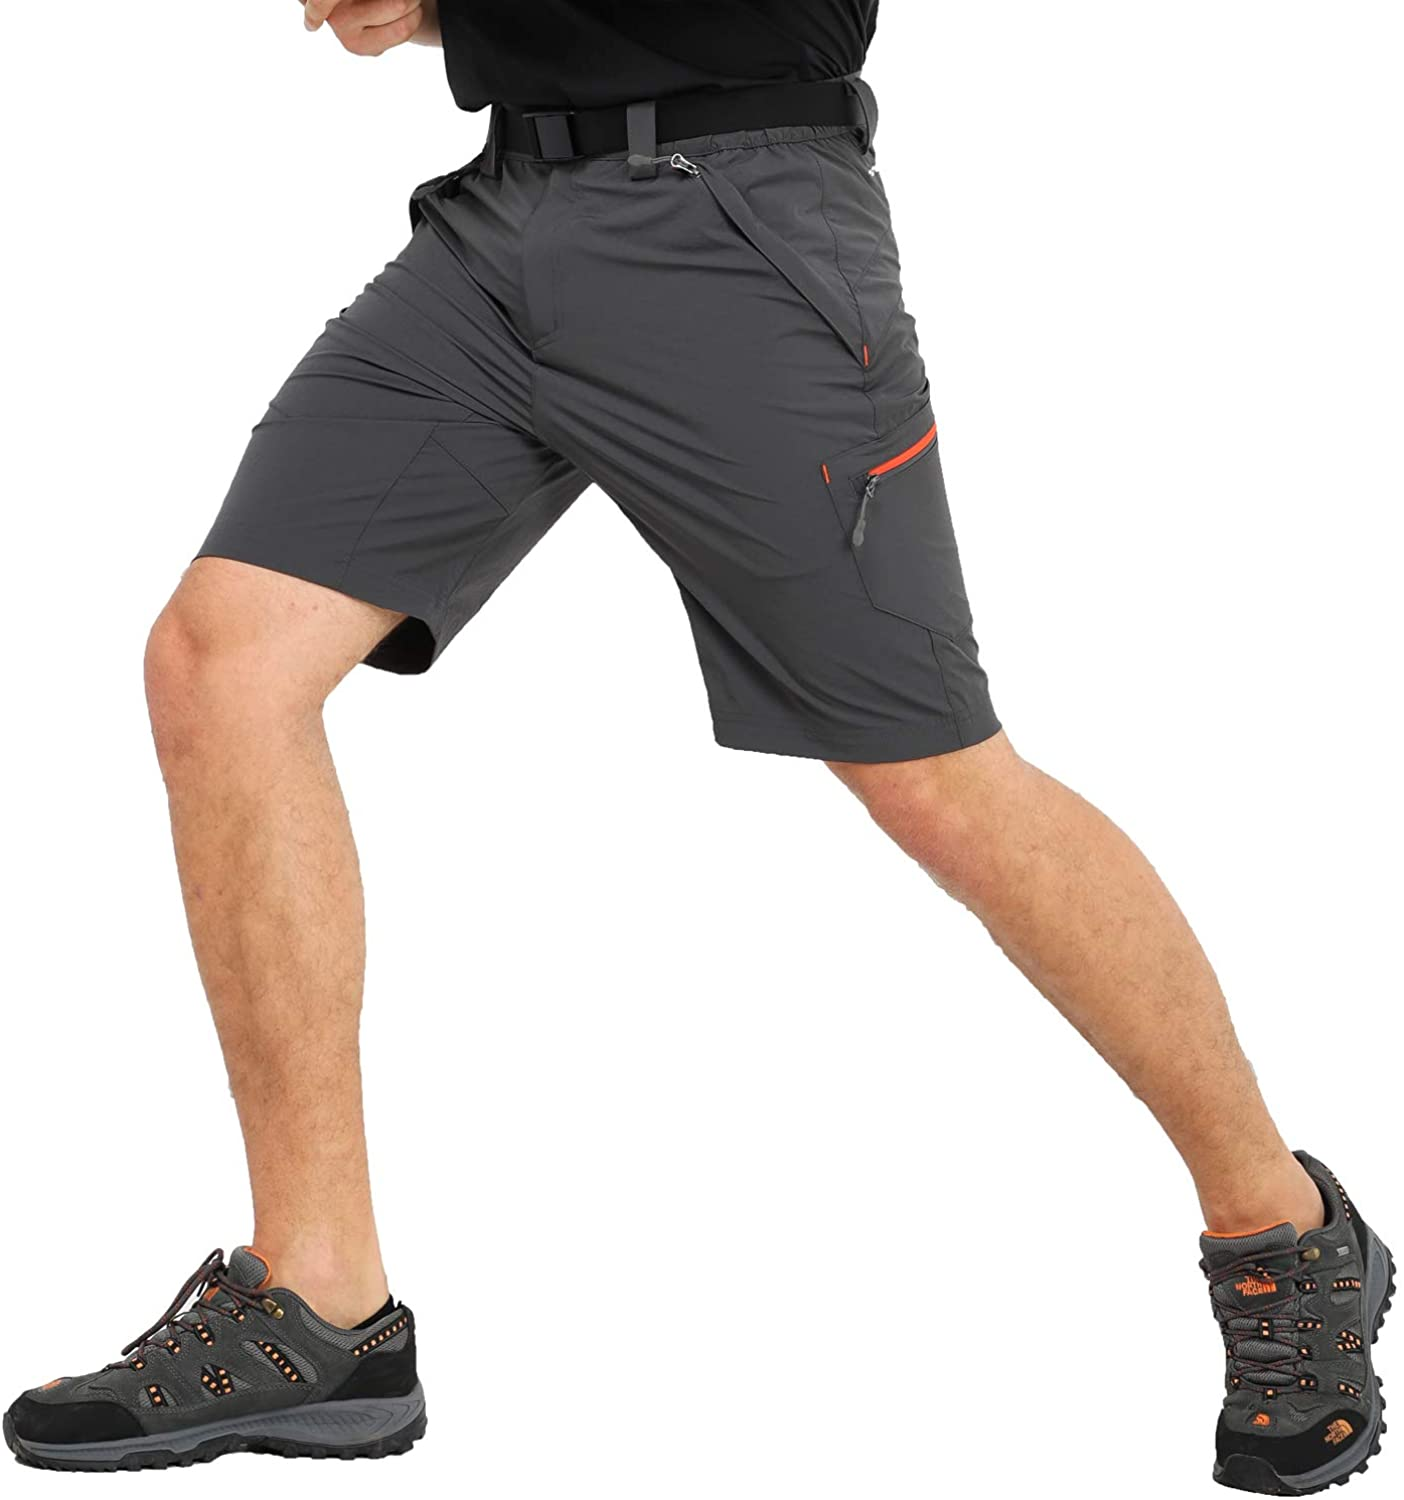 MIER Men's Stretch Hiking Shorts Quick Dry Nylon Cargo Shorts with Zipper Pockets, Water Resistant